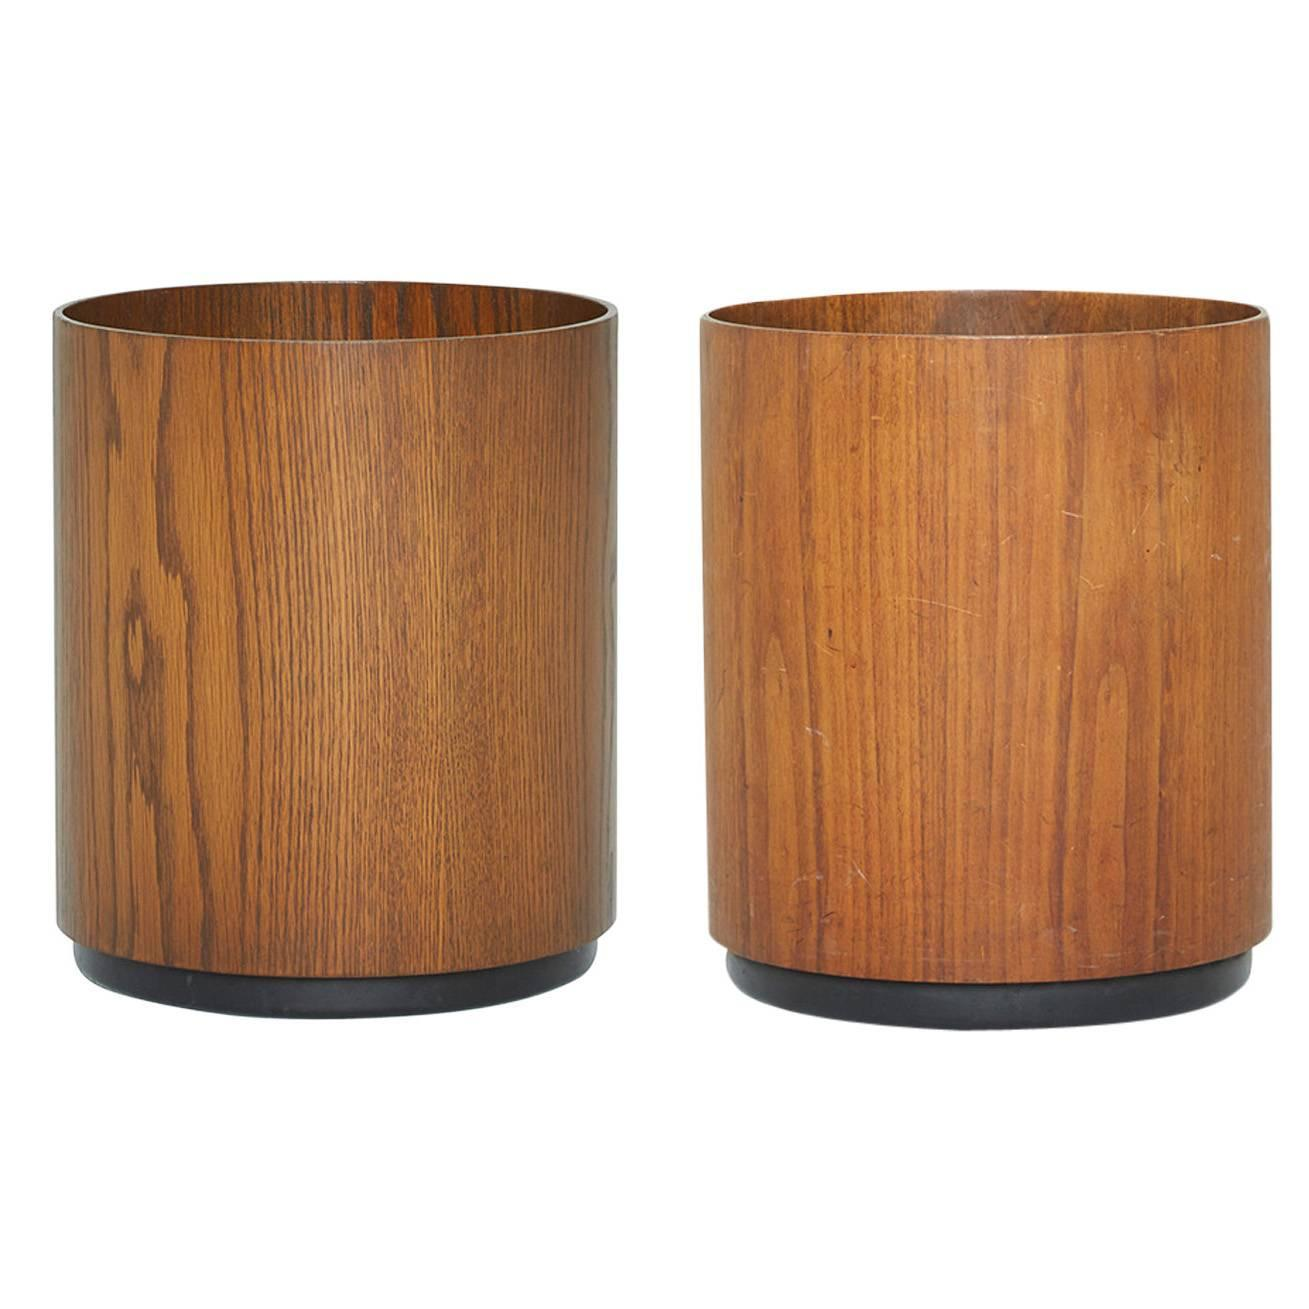 Danish modern teak wastebaskets by jens risom circa 1960 at 1stdibs - Modern wastebasket ...